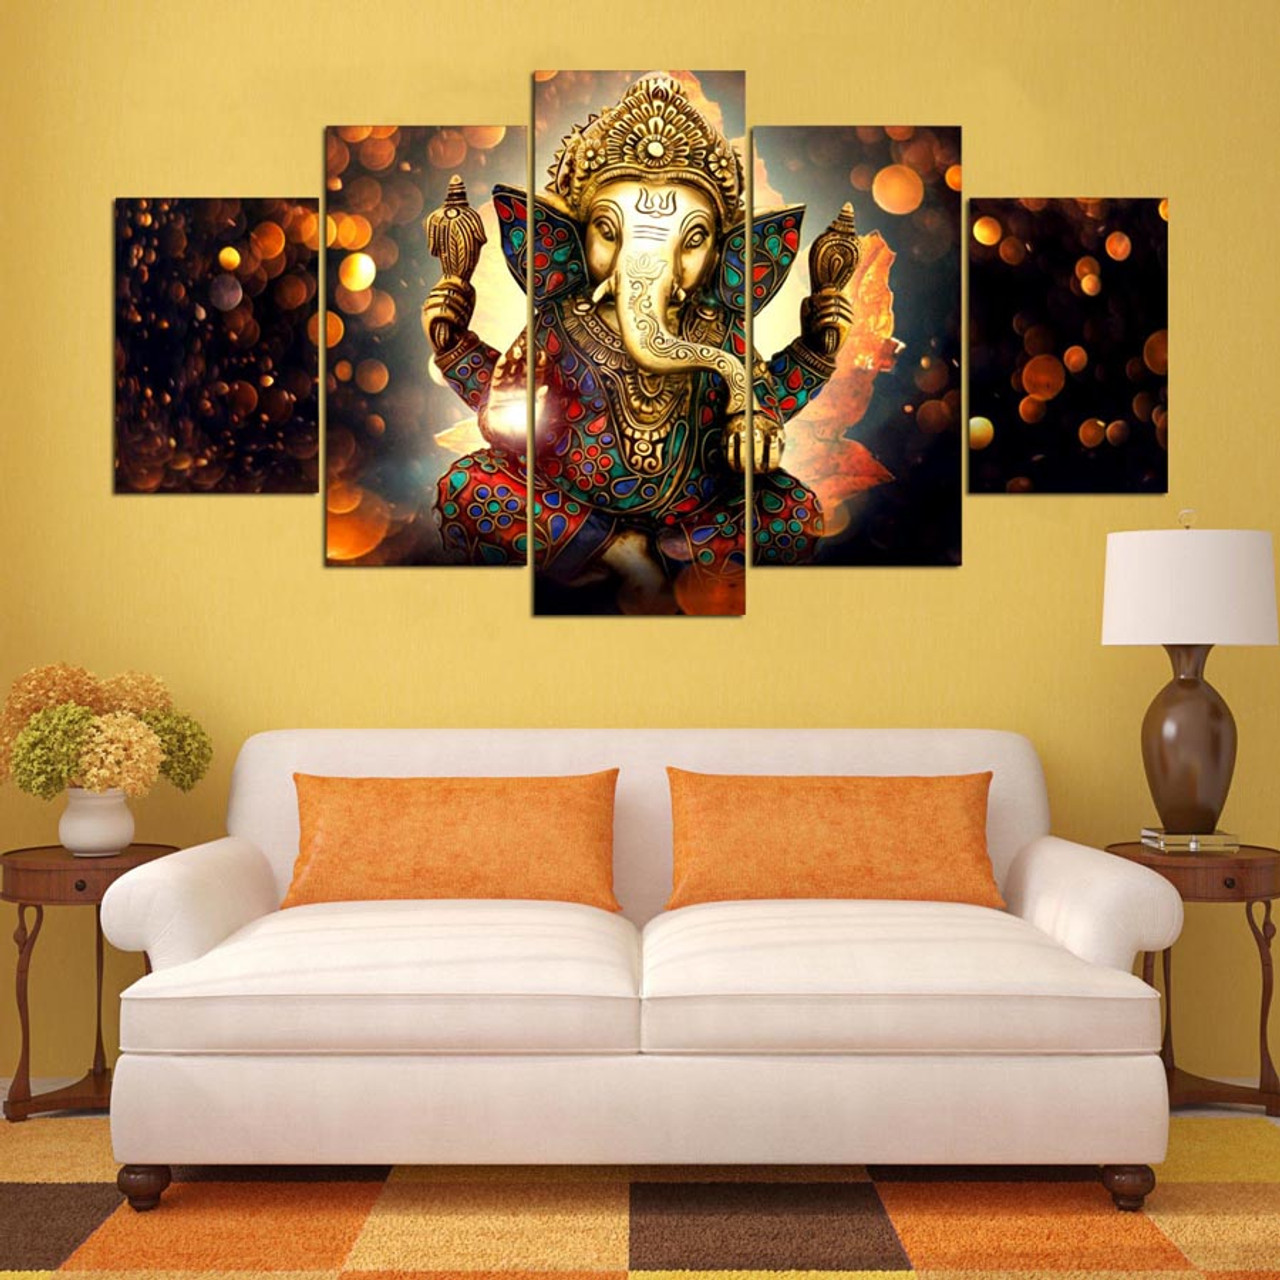 Canvas Painting Wall Art Home Decor Frame 5 Pieces Ganesh Elephant Trunk God For Living Room Modern Hd Printed Landscape Picture Onshopdeals Com